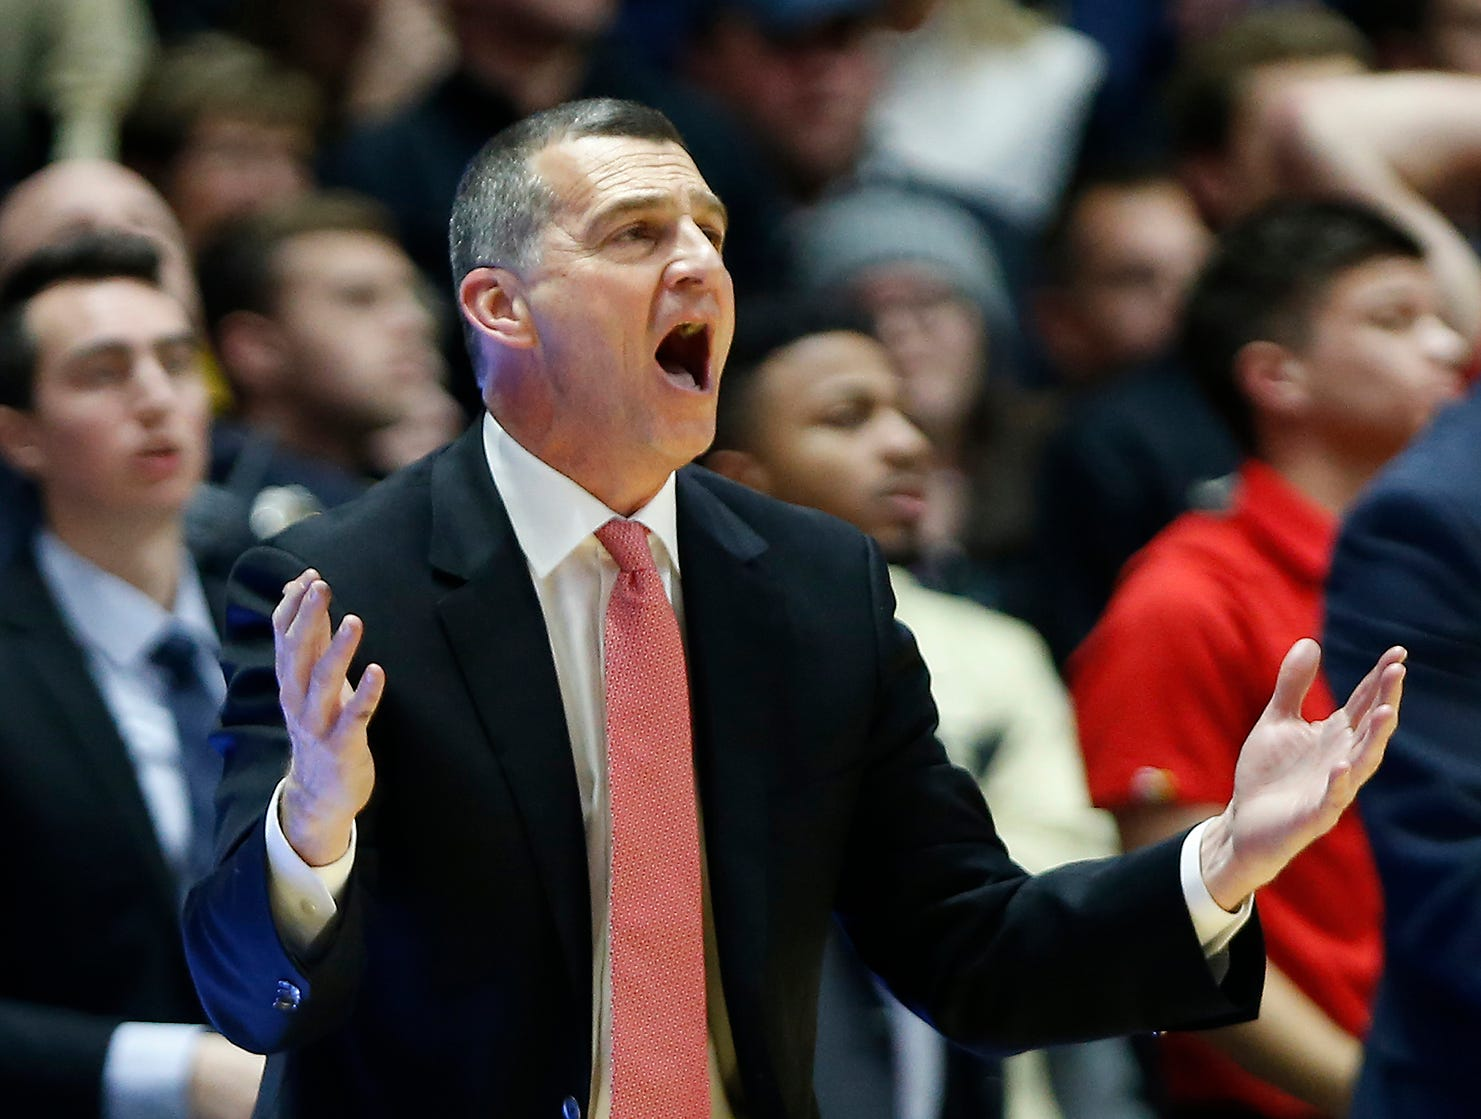 Maryland head coach Mark Turgeon reacts as Anthony Cowan Jr. is fouled with second remaining against Thursday, December 6, 2018, at Mackey Arena. Turgeon claimed Cowan was shooting a three-point shot when he was fouled. Purdue defeated Maryland 62-60.